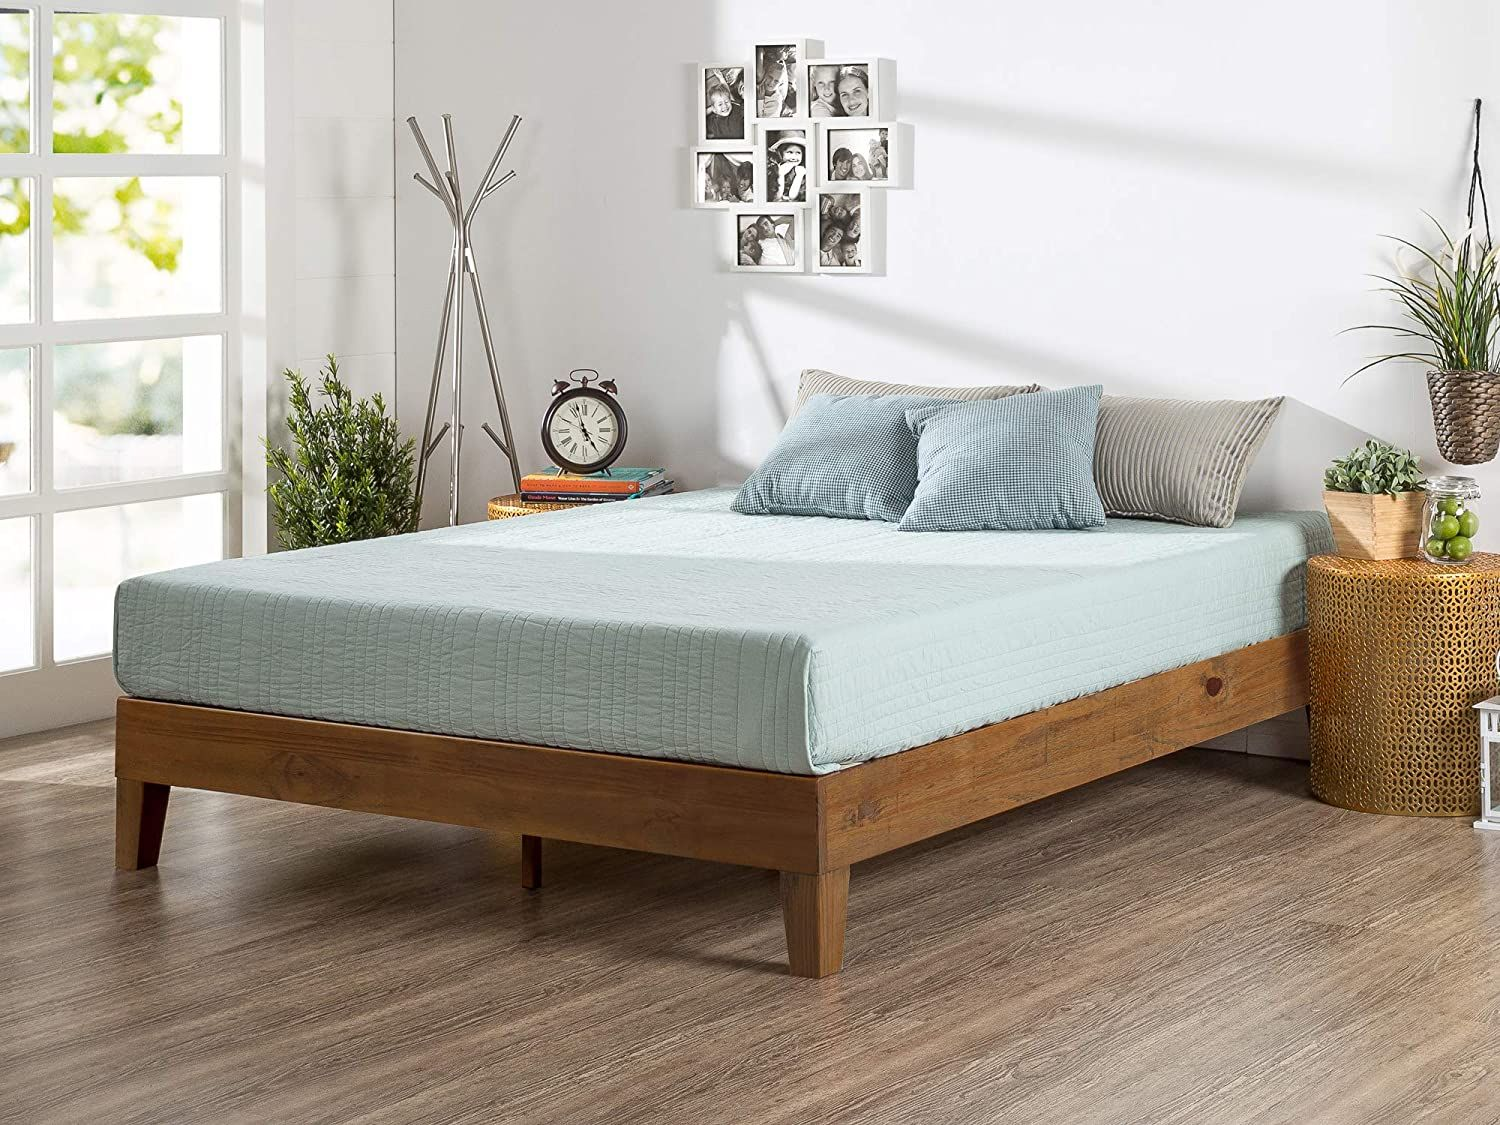 Picture of: 16 Best Platform Beds 2020 The Strategist New York Magazine